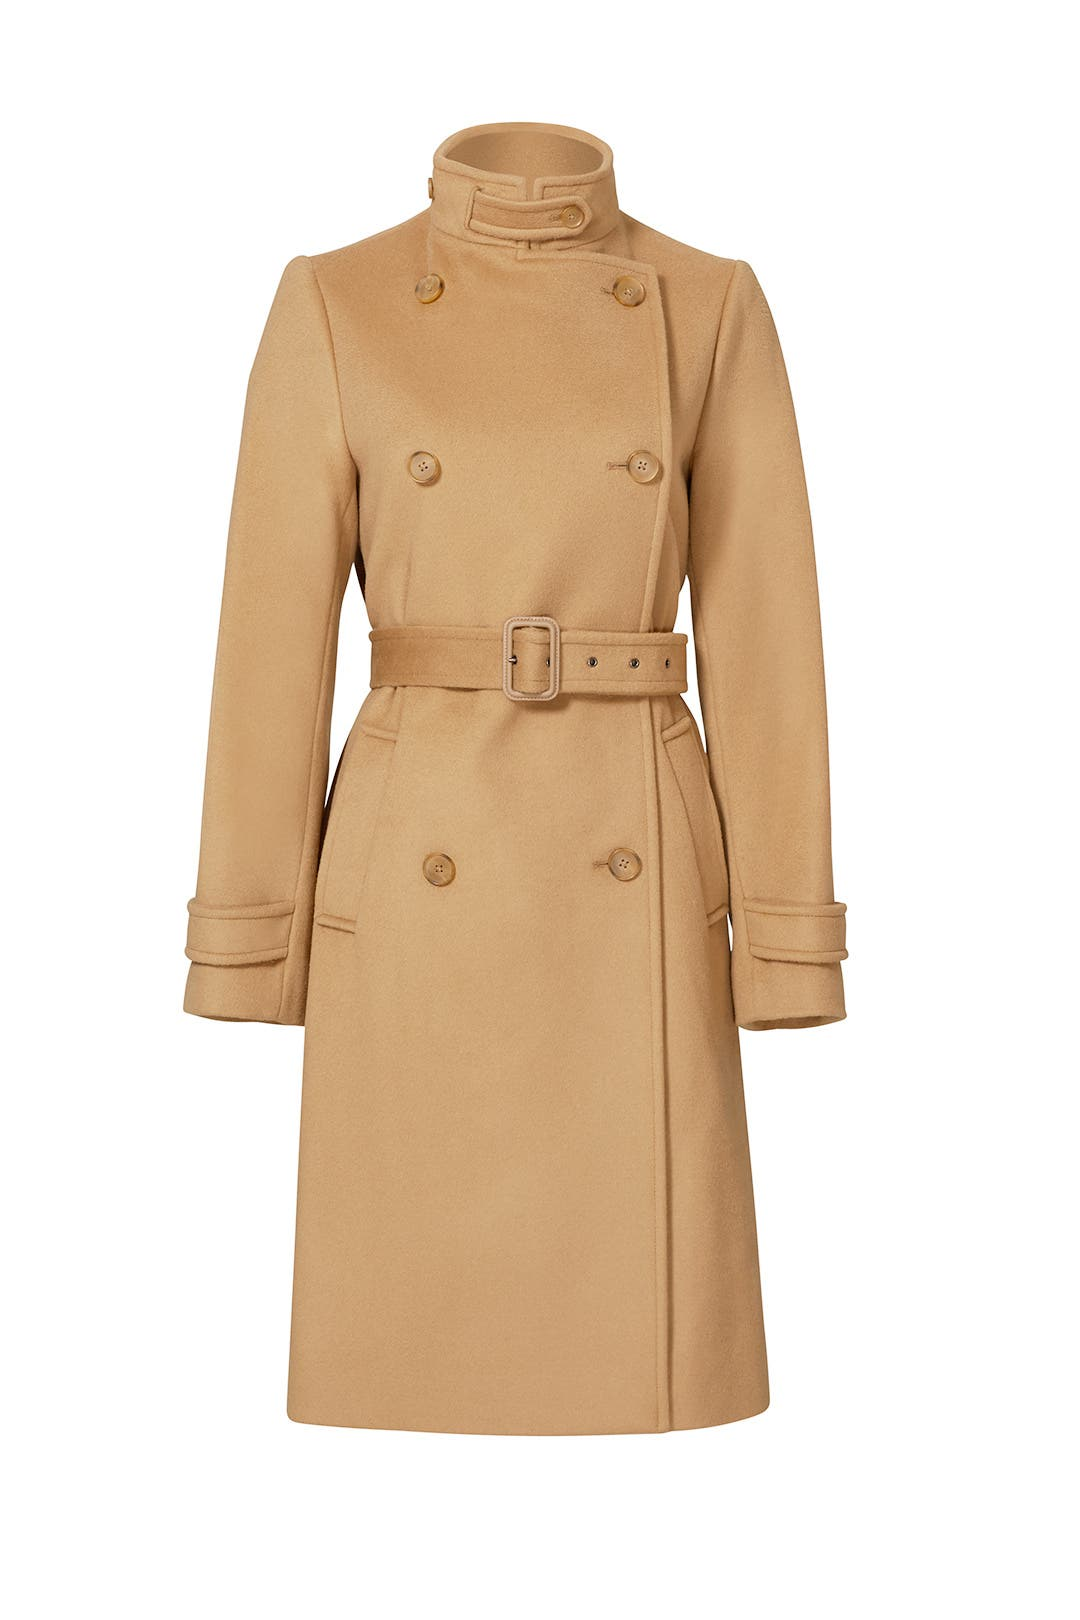 Melodicday offers Fashion Long Sleeve Fur Collar Double Breasted Belted Trench Coat Camel & more to fit your fashionable needs. Shipping Worldwide!Buy Now! Fashion Long Sleeve Fur Collar Double Breasted Belted Trench Coat Camel $ $ SKU:PCOCA.